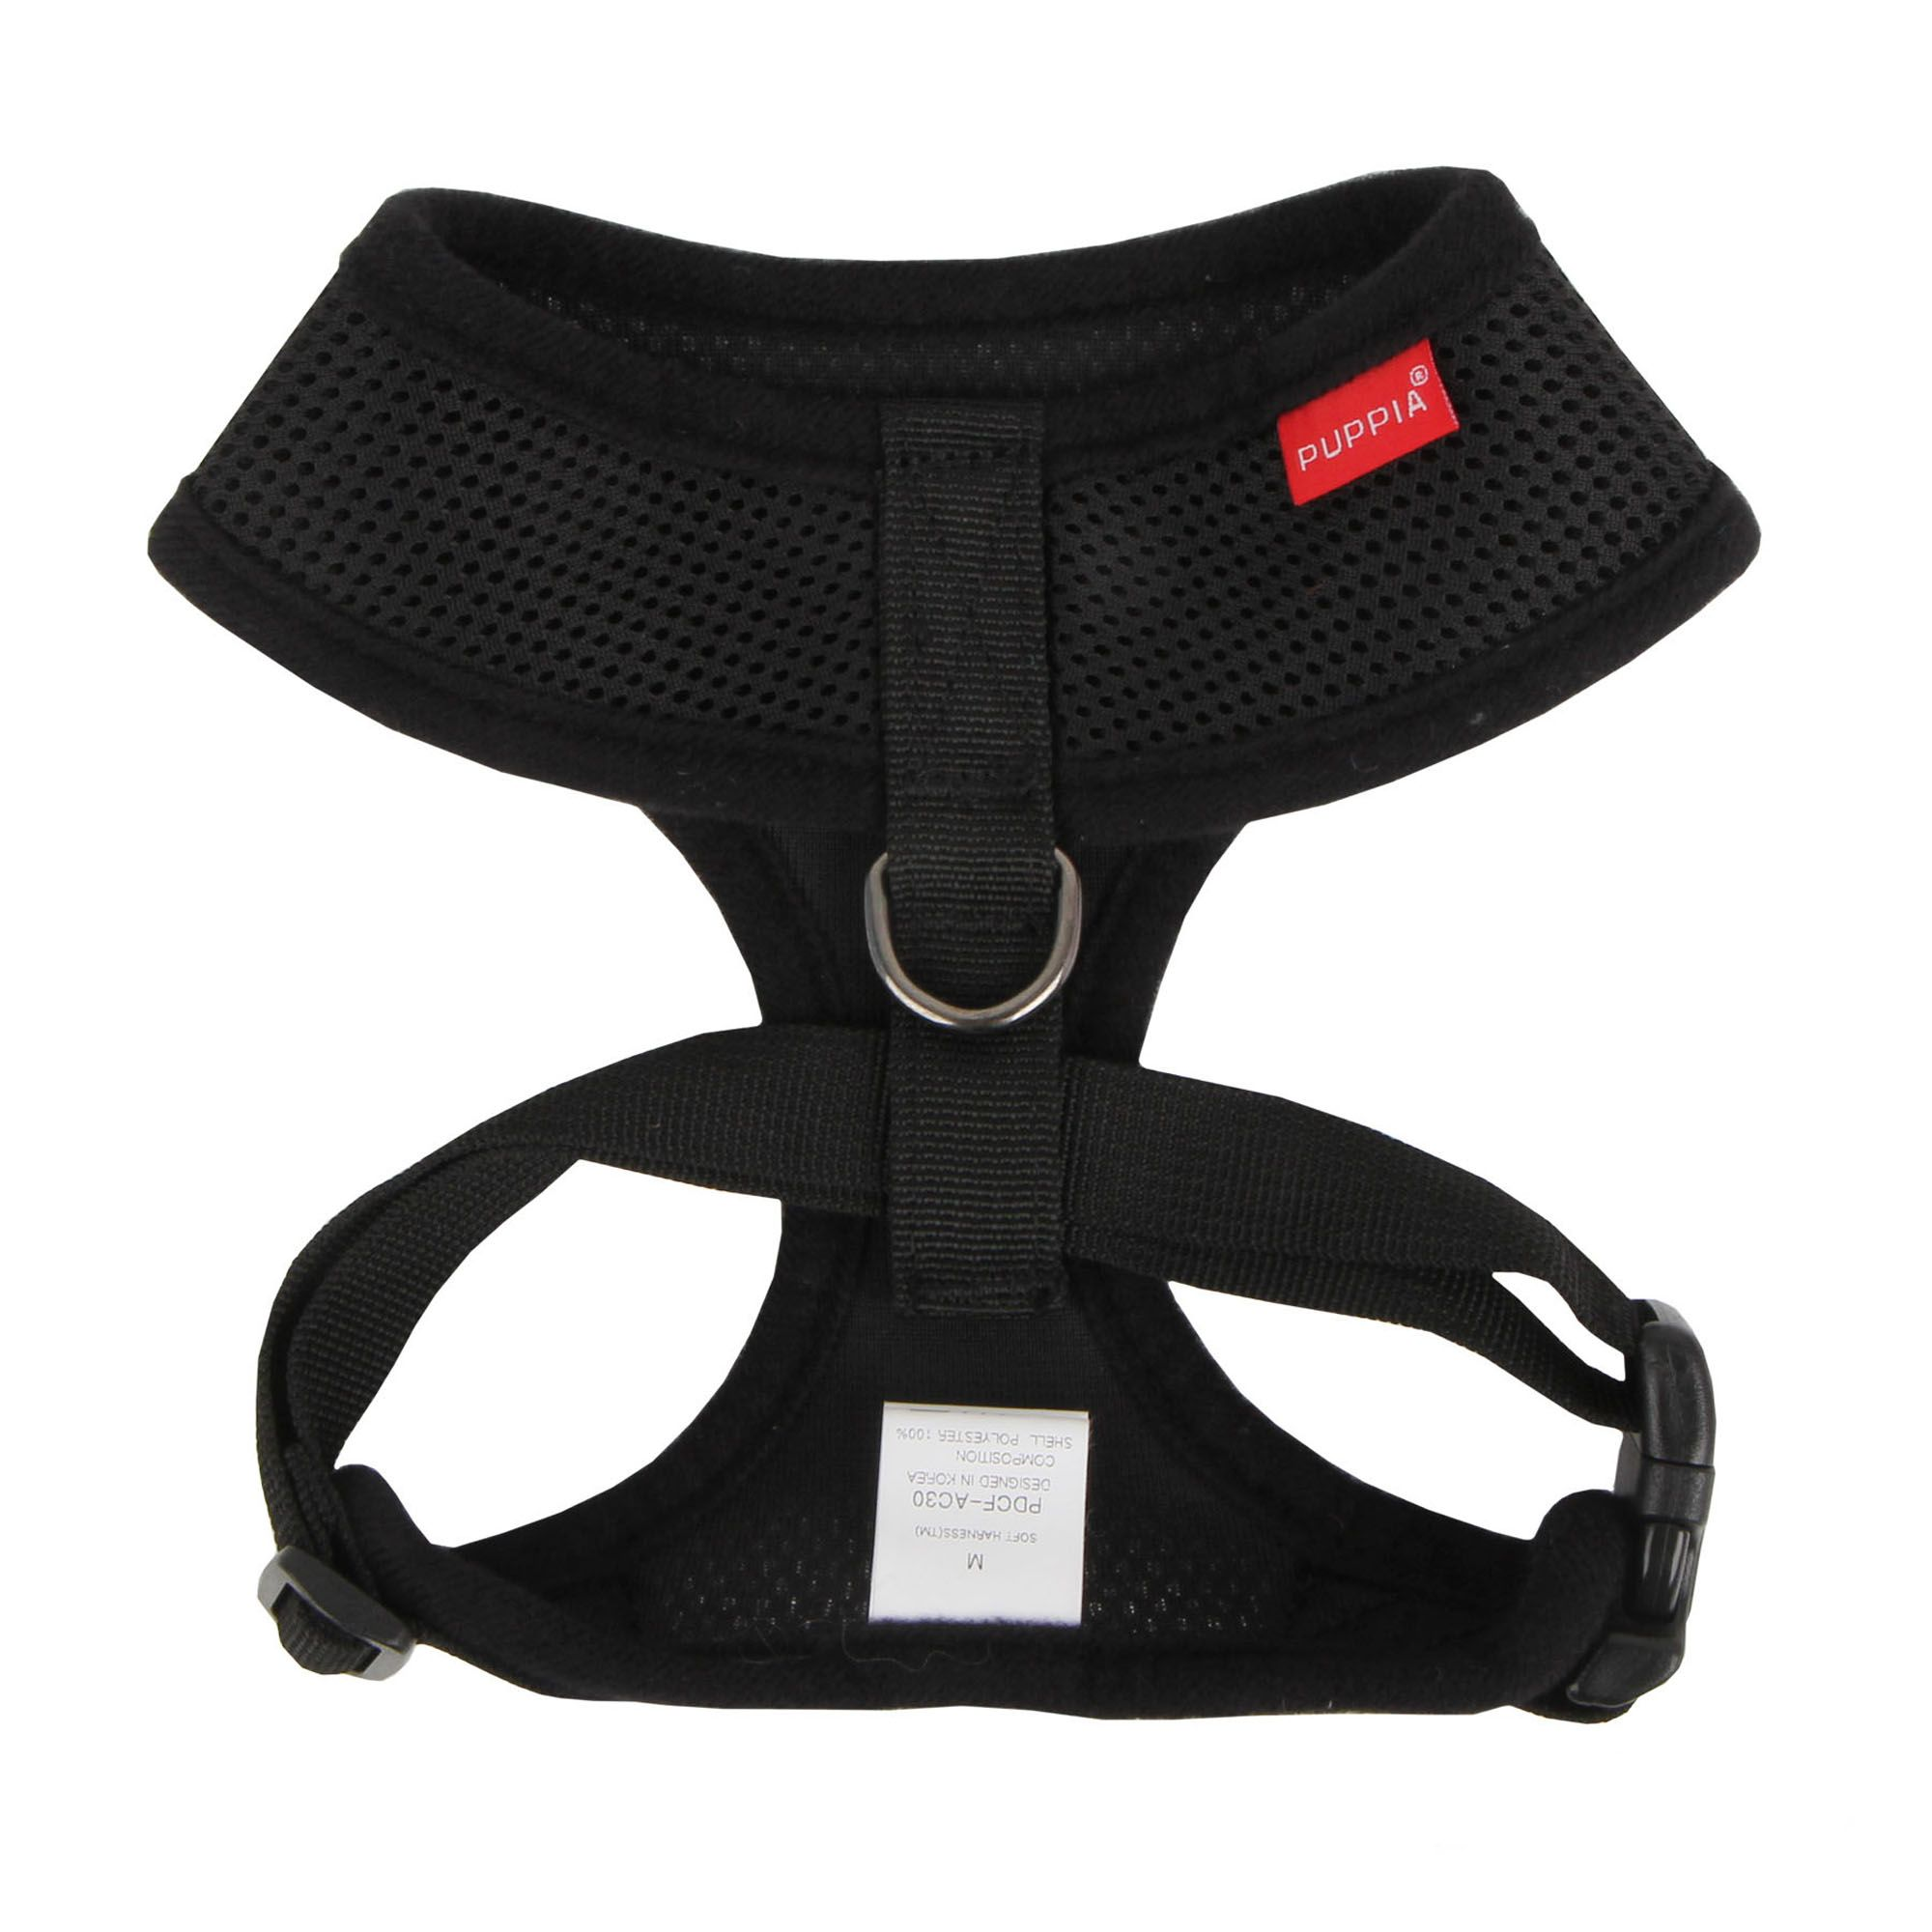 Puppia Soft Adjule Dog Harness